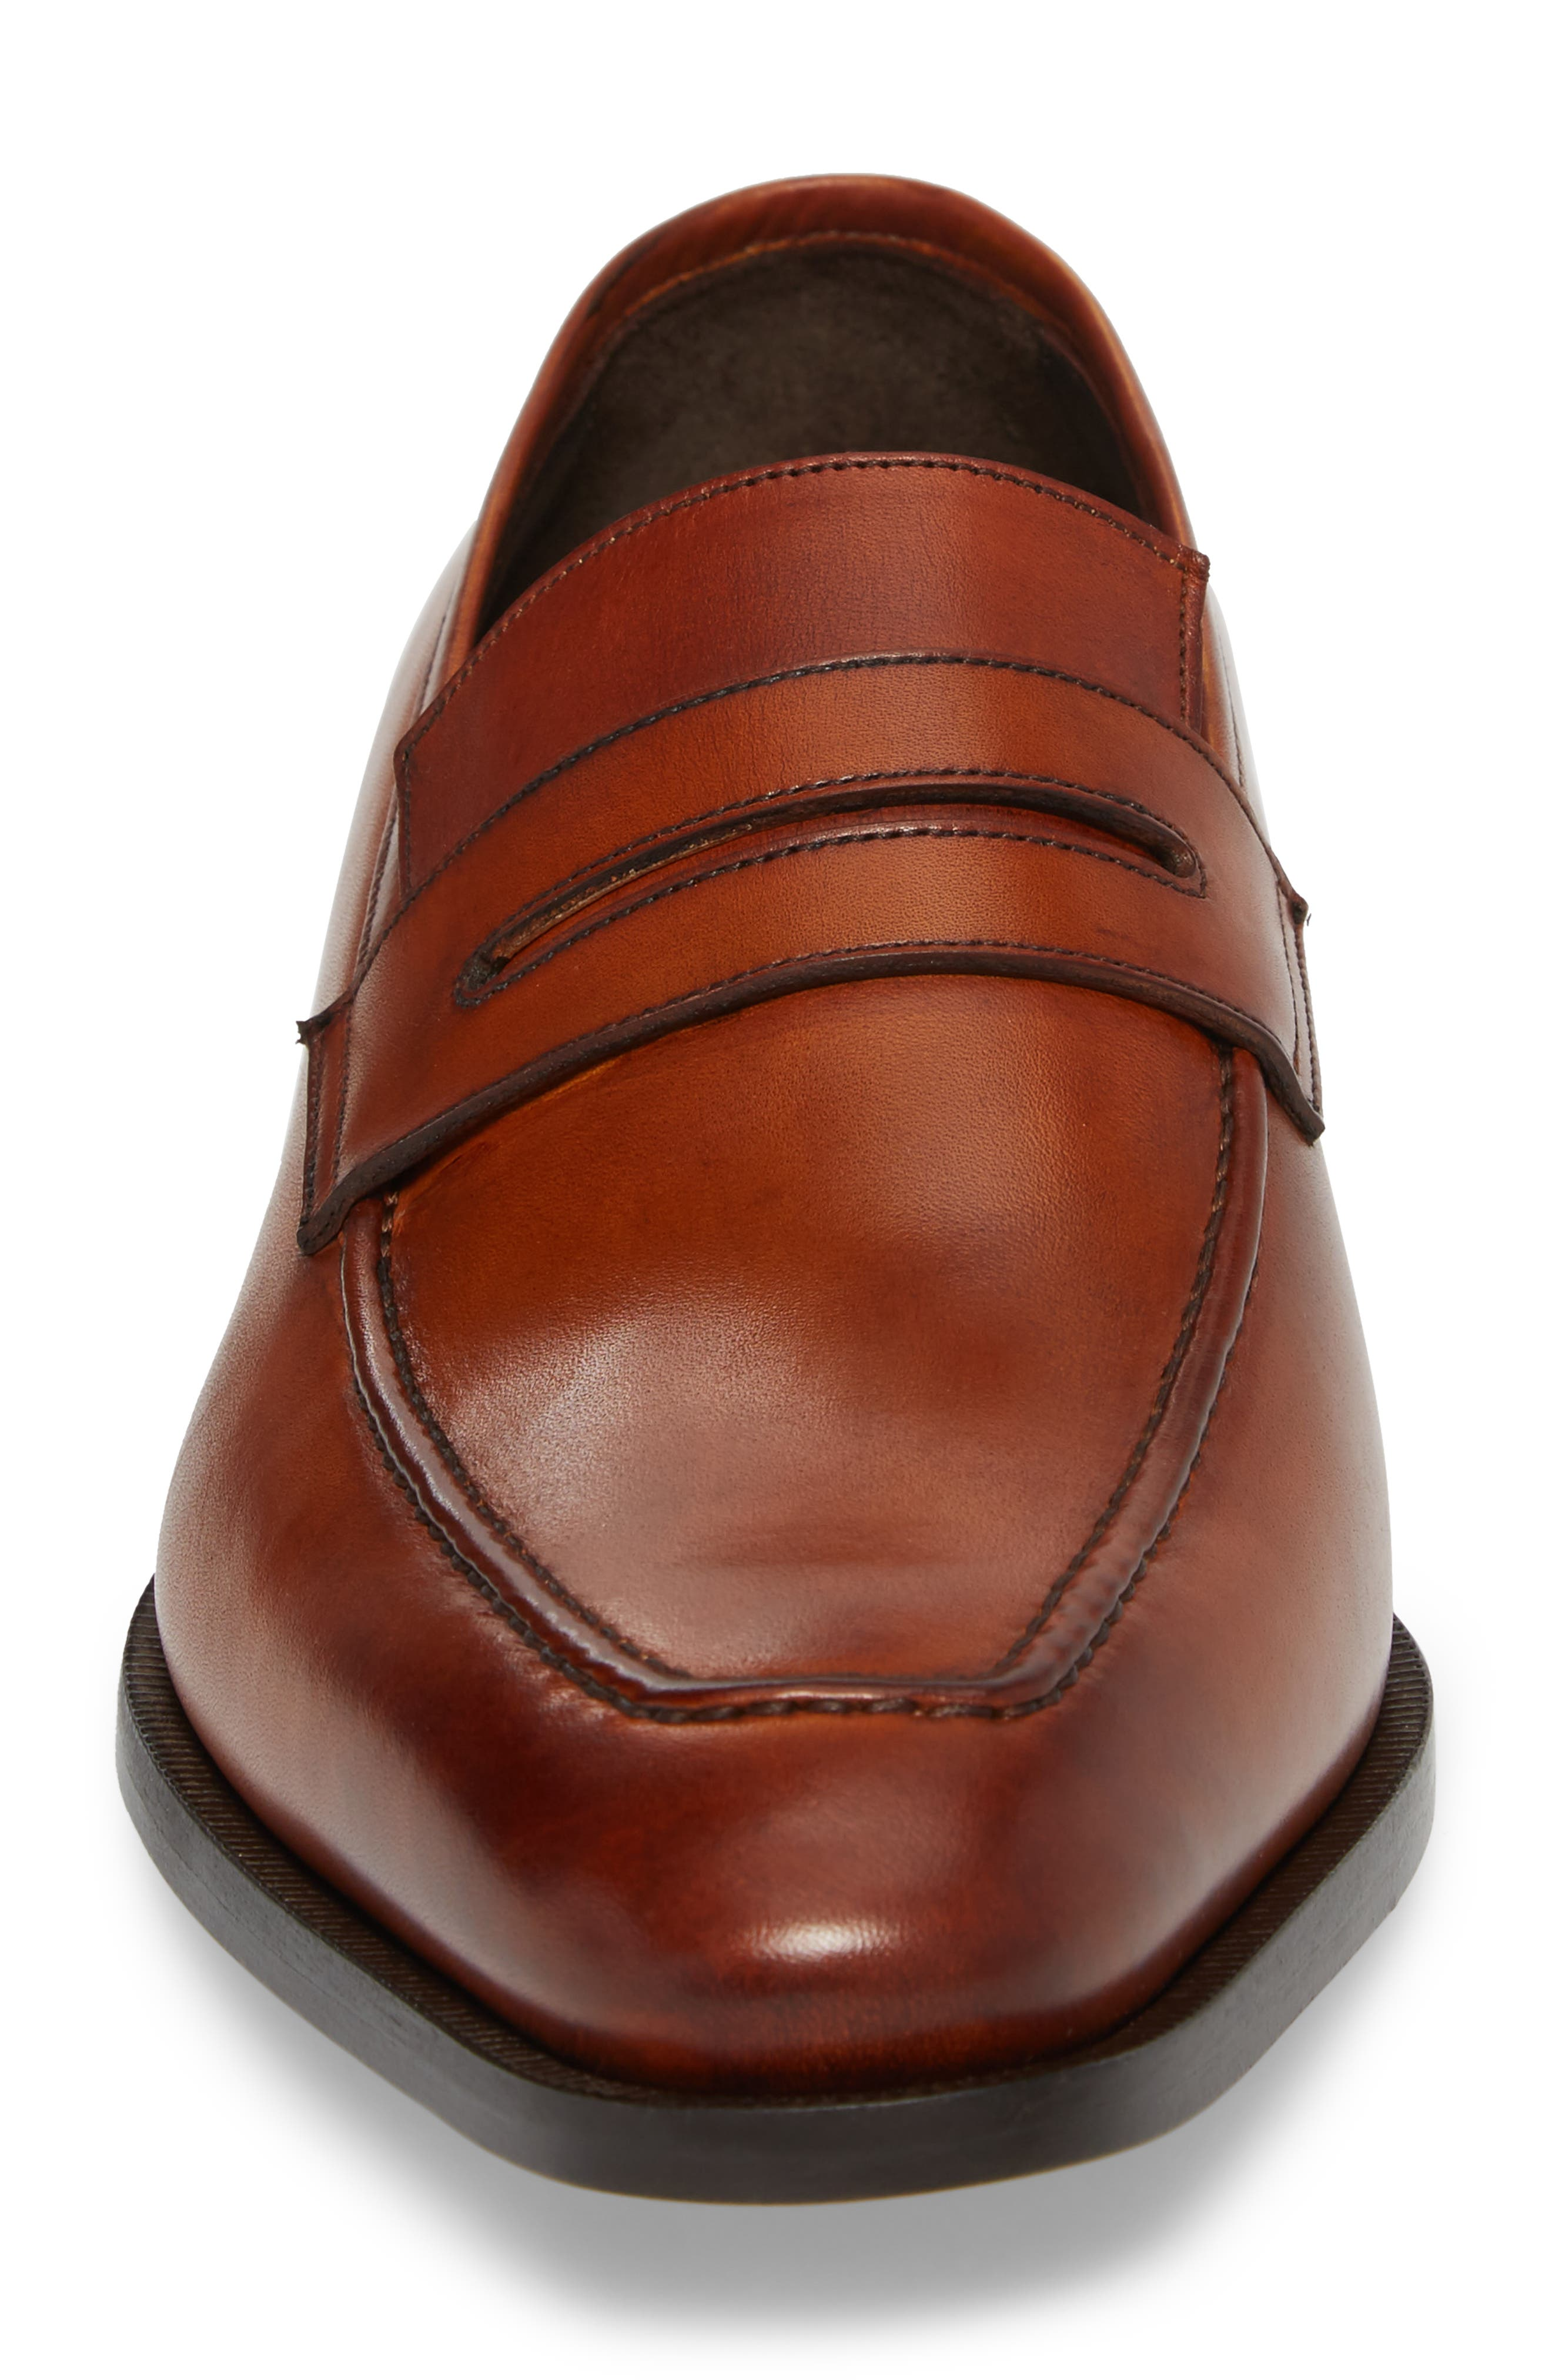 Eastwood Apron Toe Penny Loafer,                             Alternate thumbnail 4, color,                             231